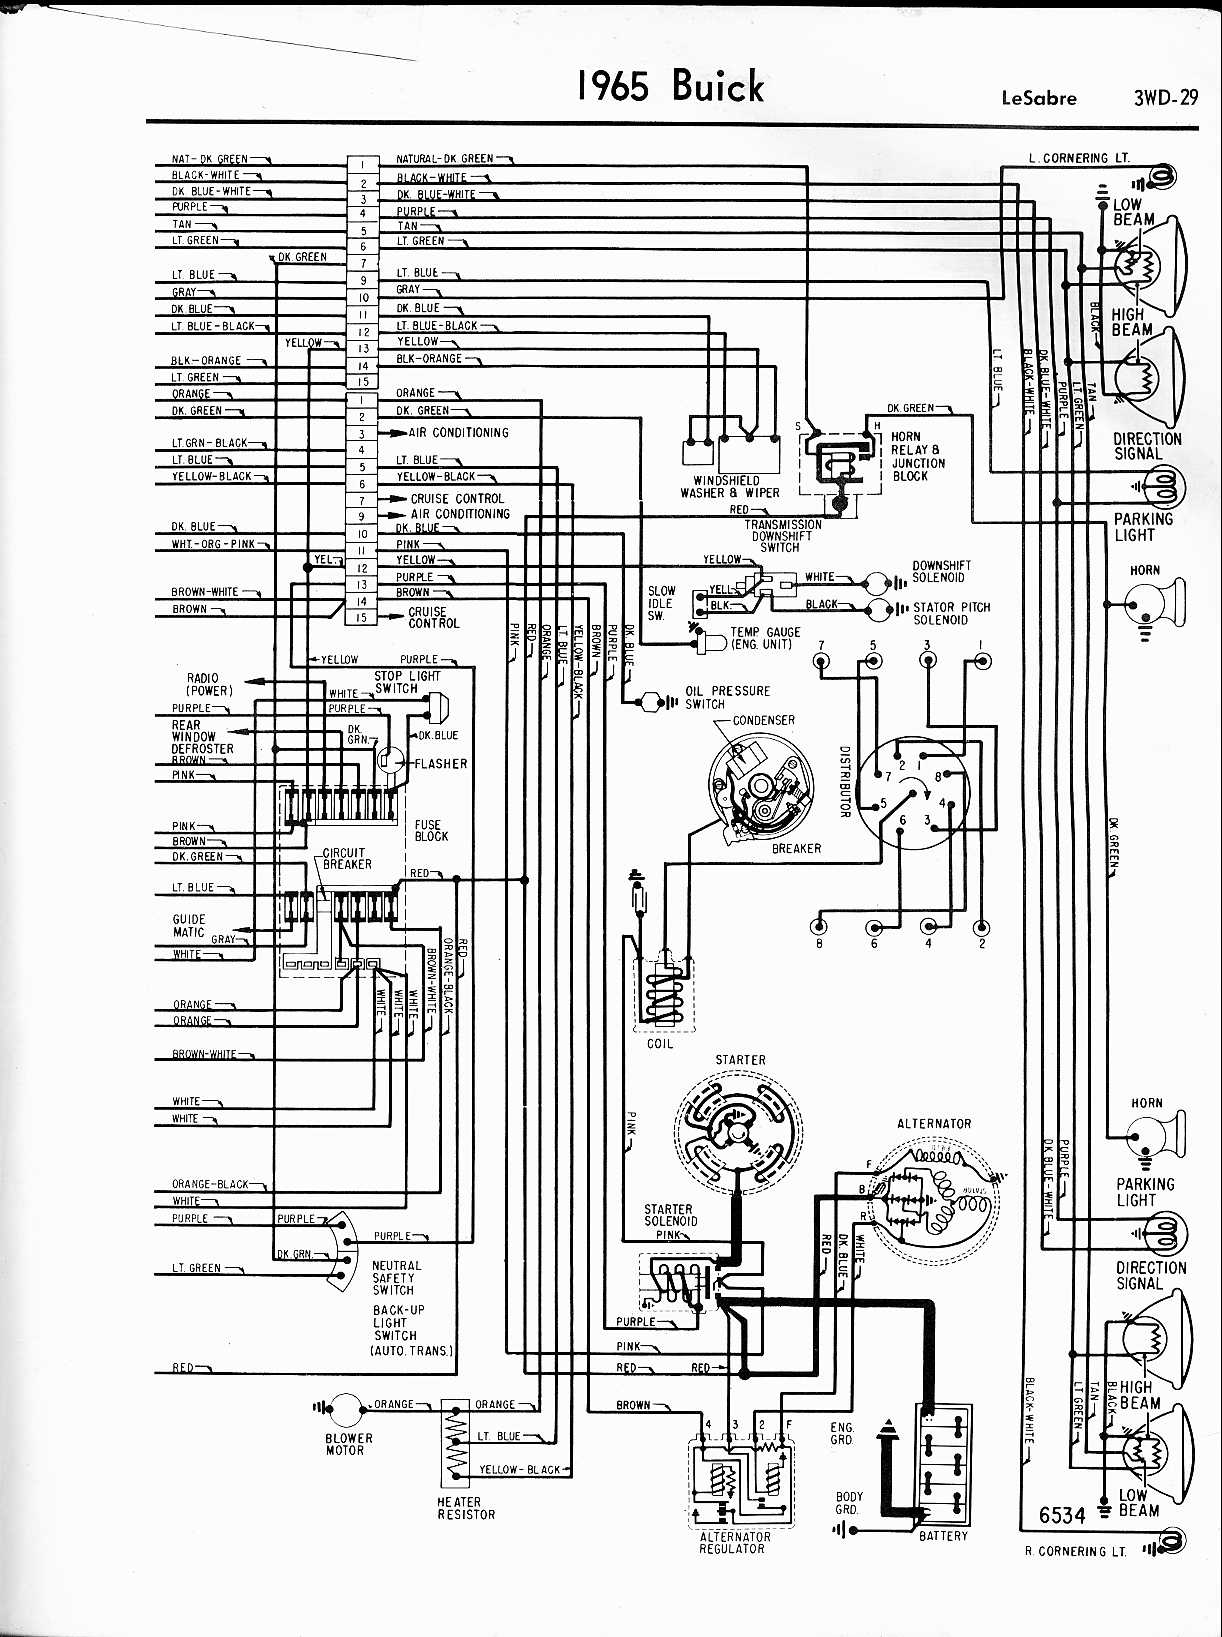 MWireBuic65_3WD 029 buick wiring diagrams 1957 1965 Wiring Schematics for Johnson Outboards at suagrazia.org